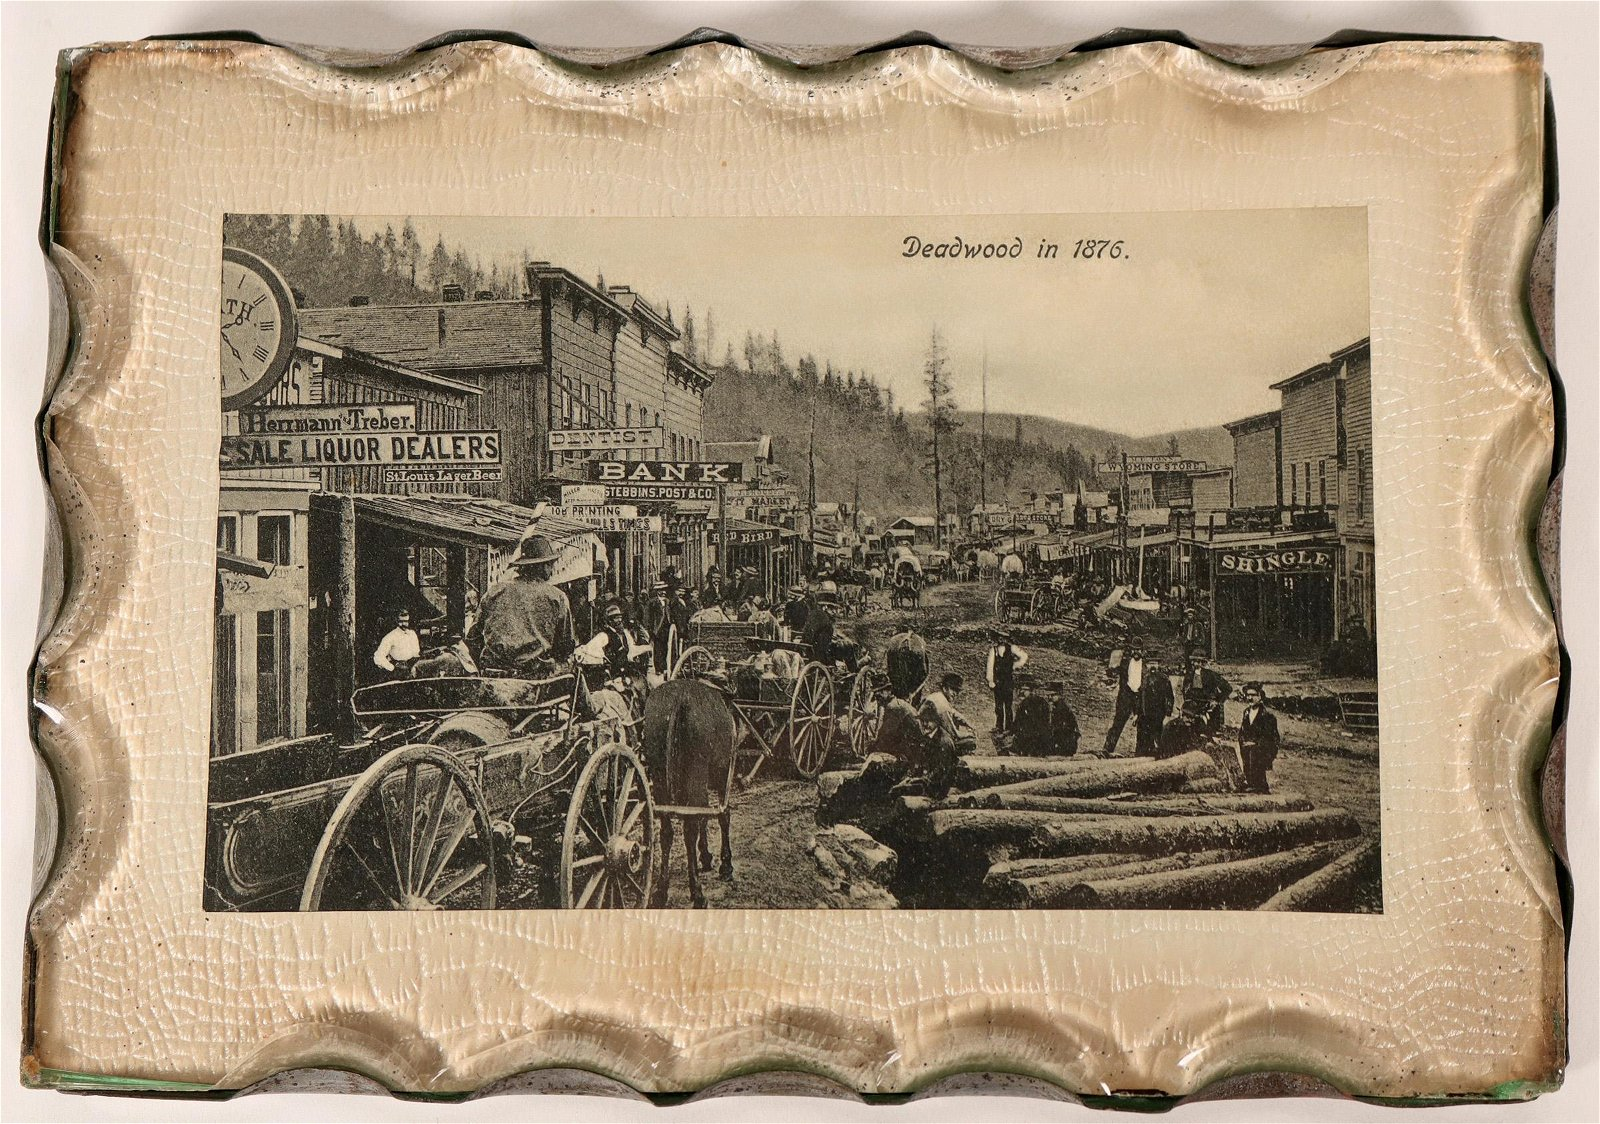 Deadwood, 1876 Scene with Chipped Glass Frame/Cover